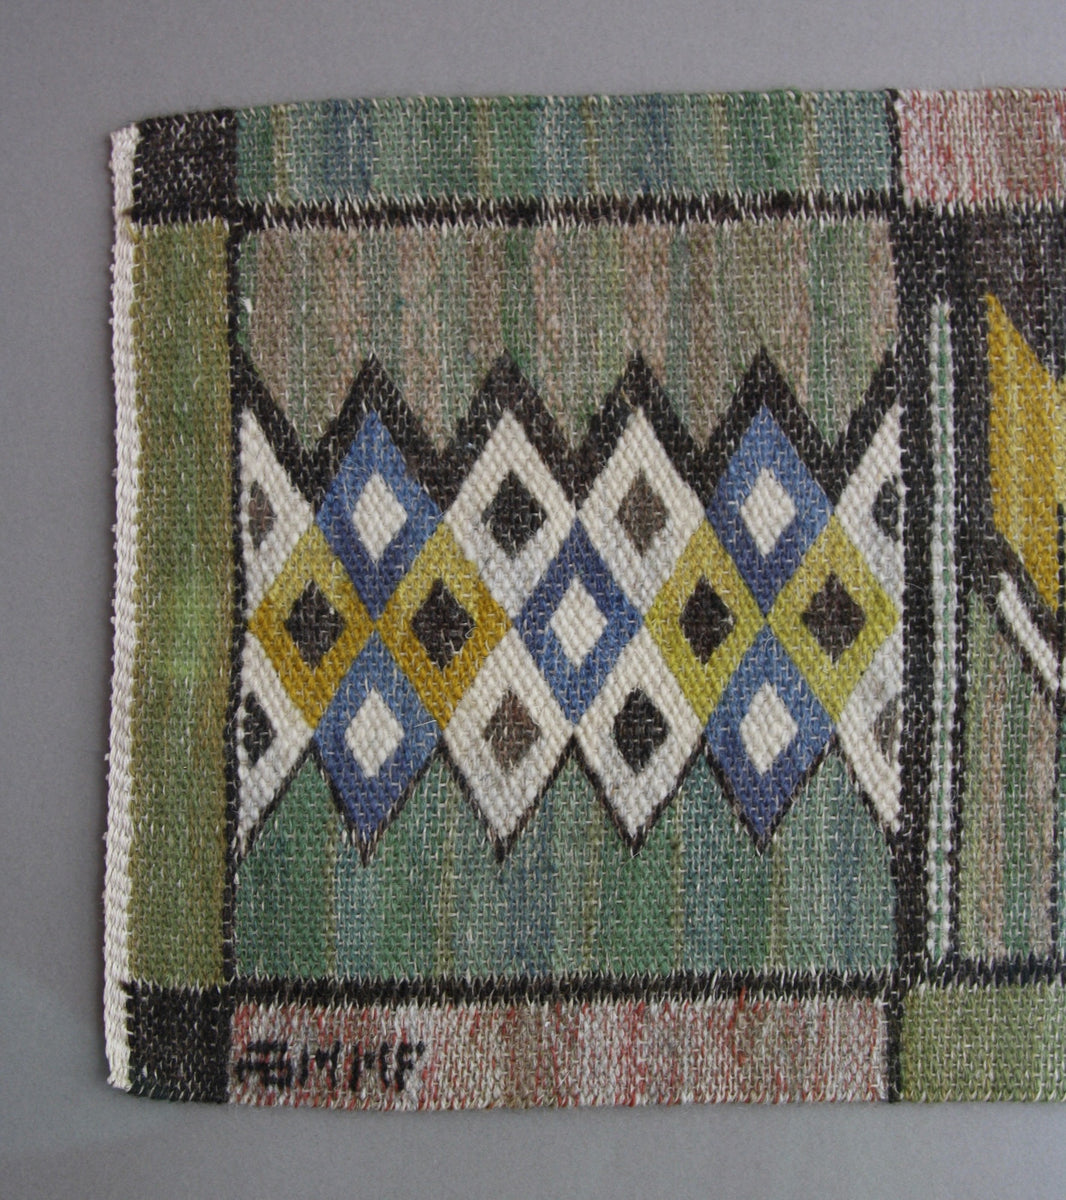 folk art classic art classic textiles swedish folk art swedish textiles textile art the best textiles